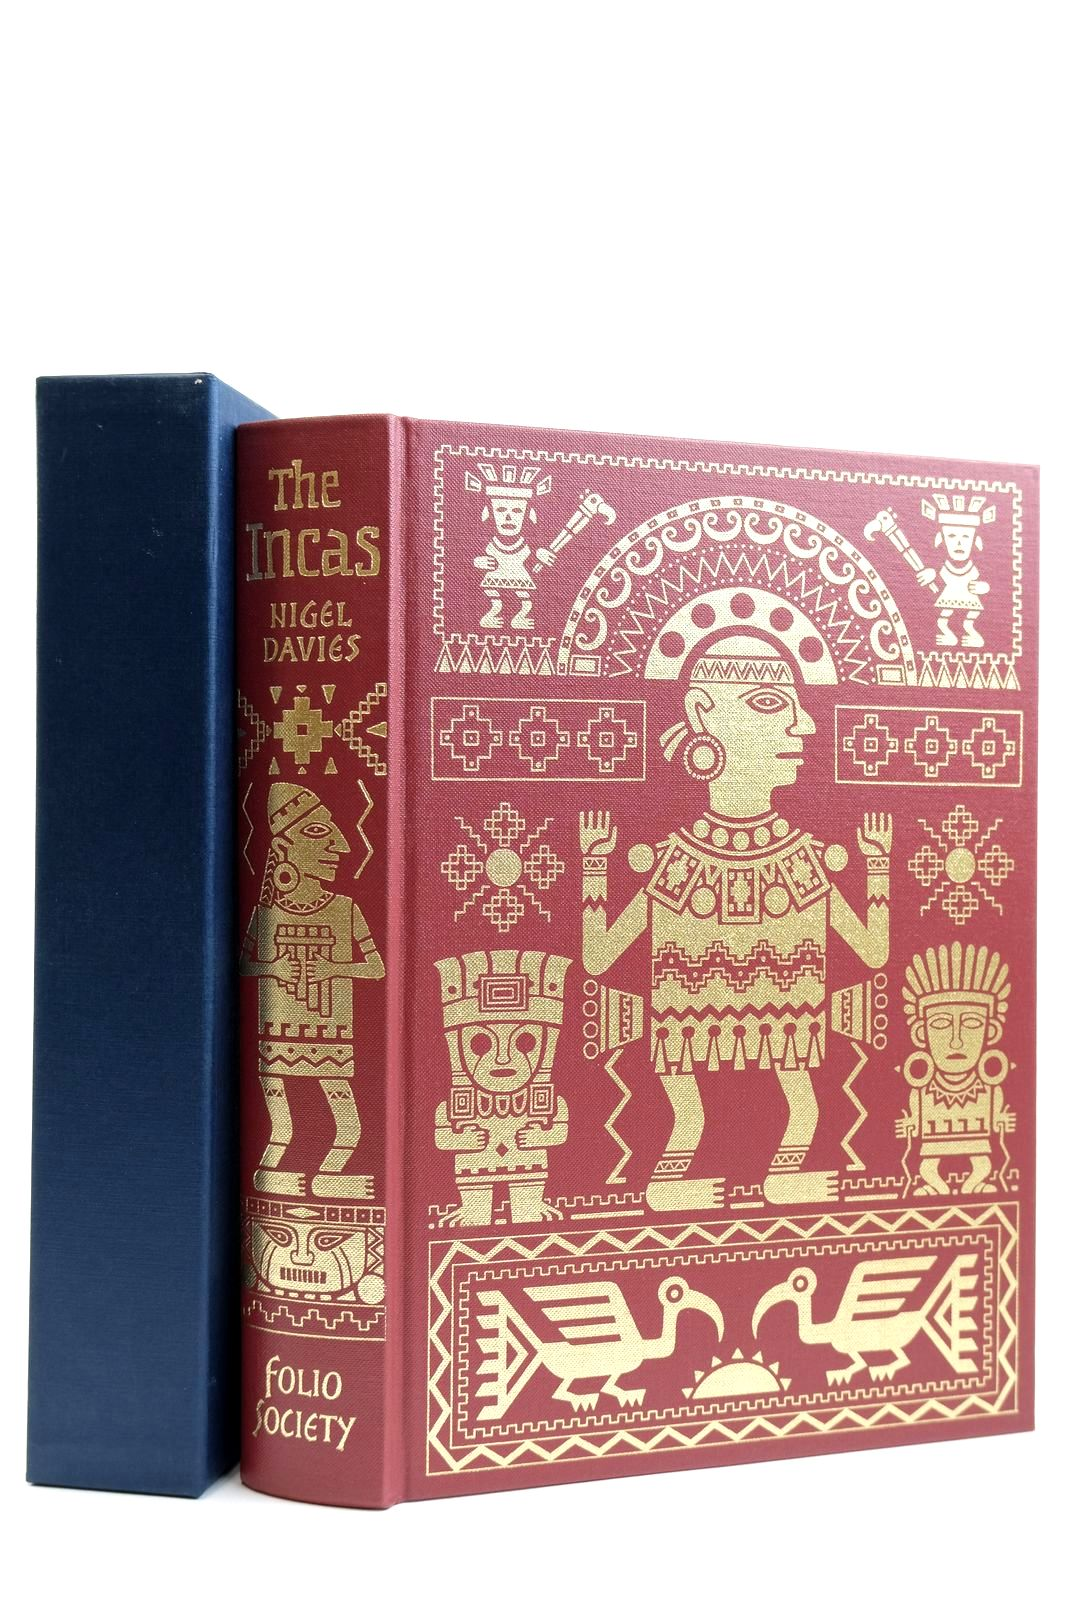 Photo of THE INCAS written by Davies, Nigel Bray, Warwick published by Folio Society (STOCK CODE: 2131900)  for sale by Stella & Rose's Books